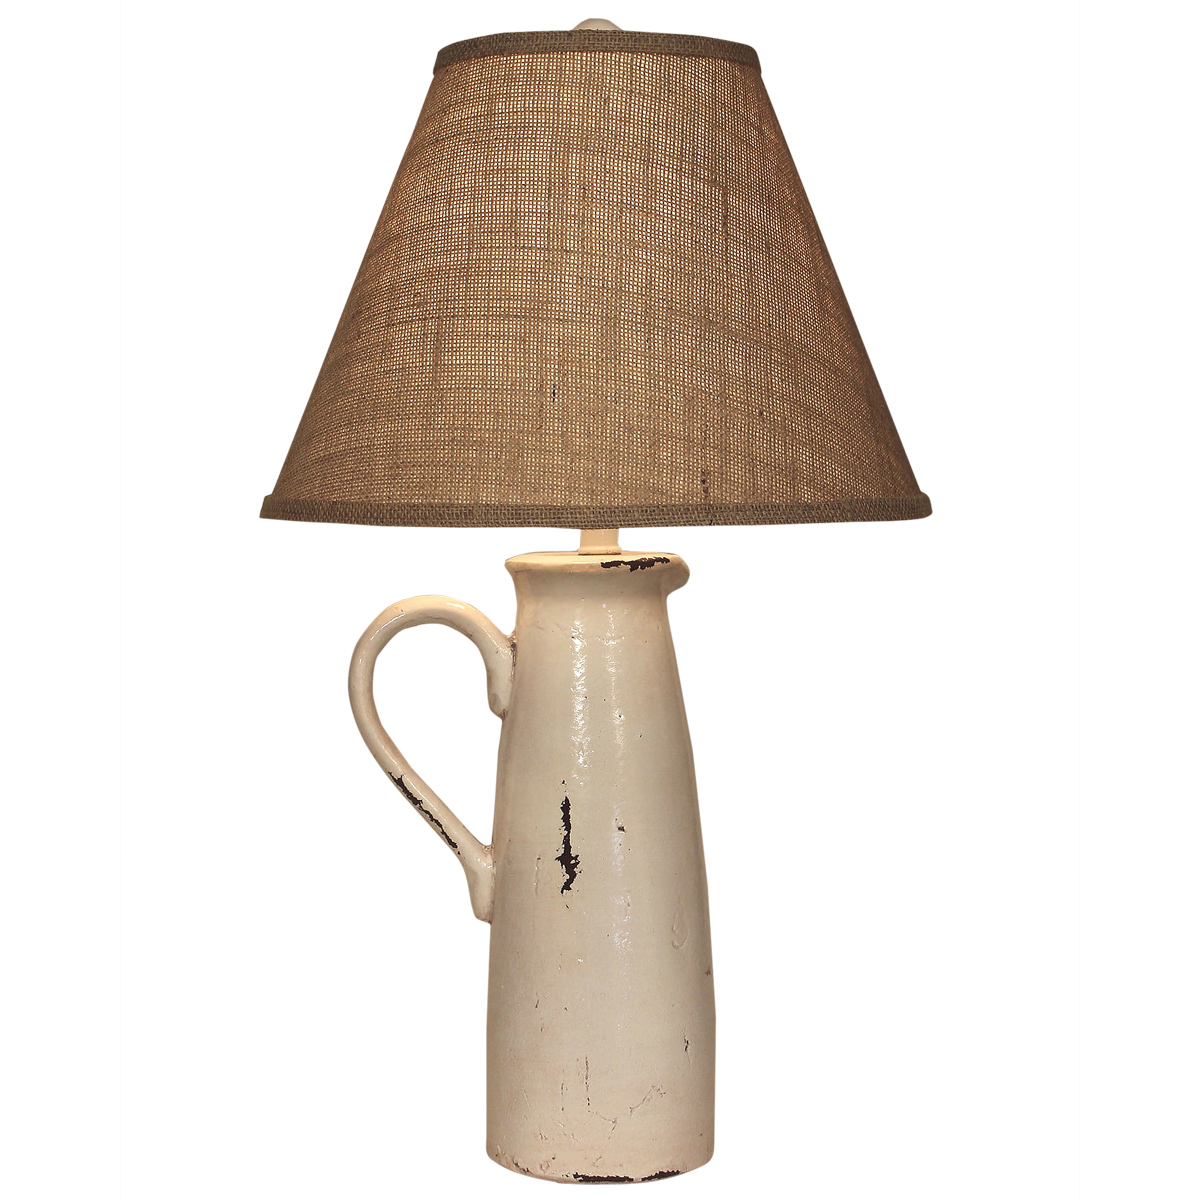 Ecru Handled Pitcher Table Lamp